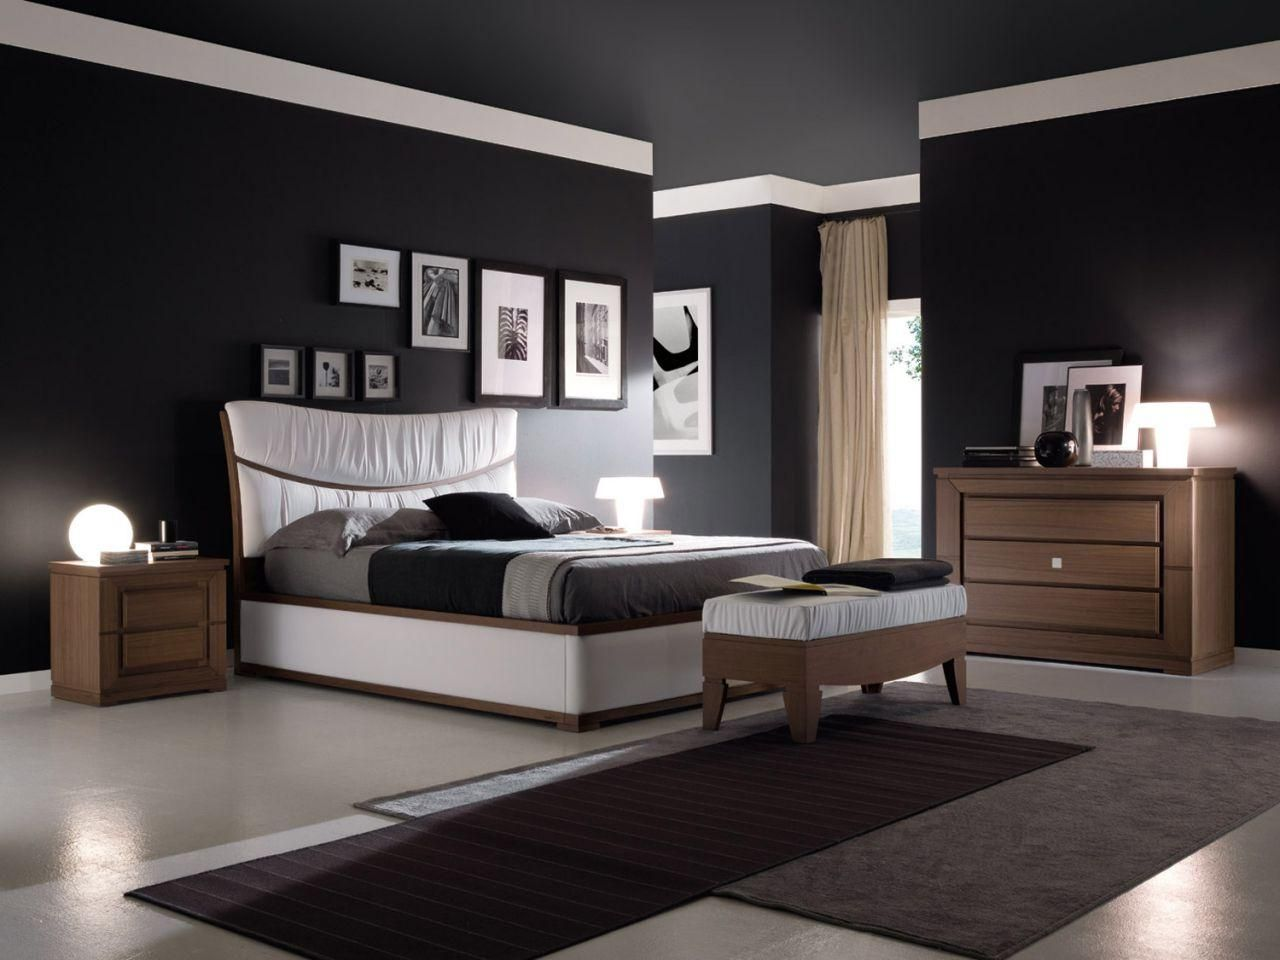 Beautiful Black Paint For Bedroom Walls Pictures Home Design